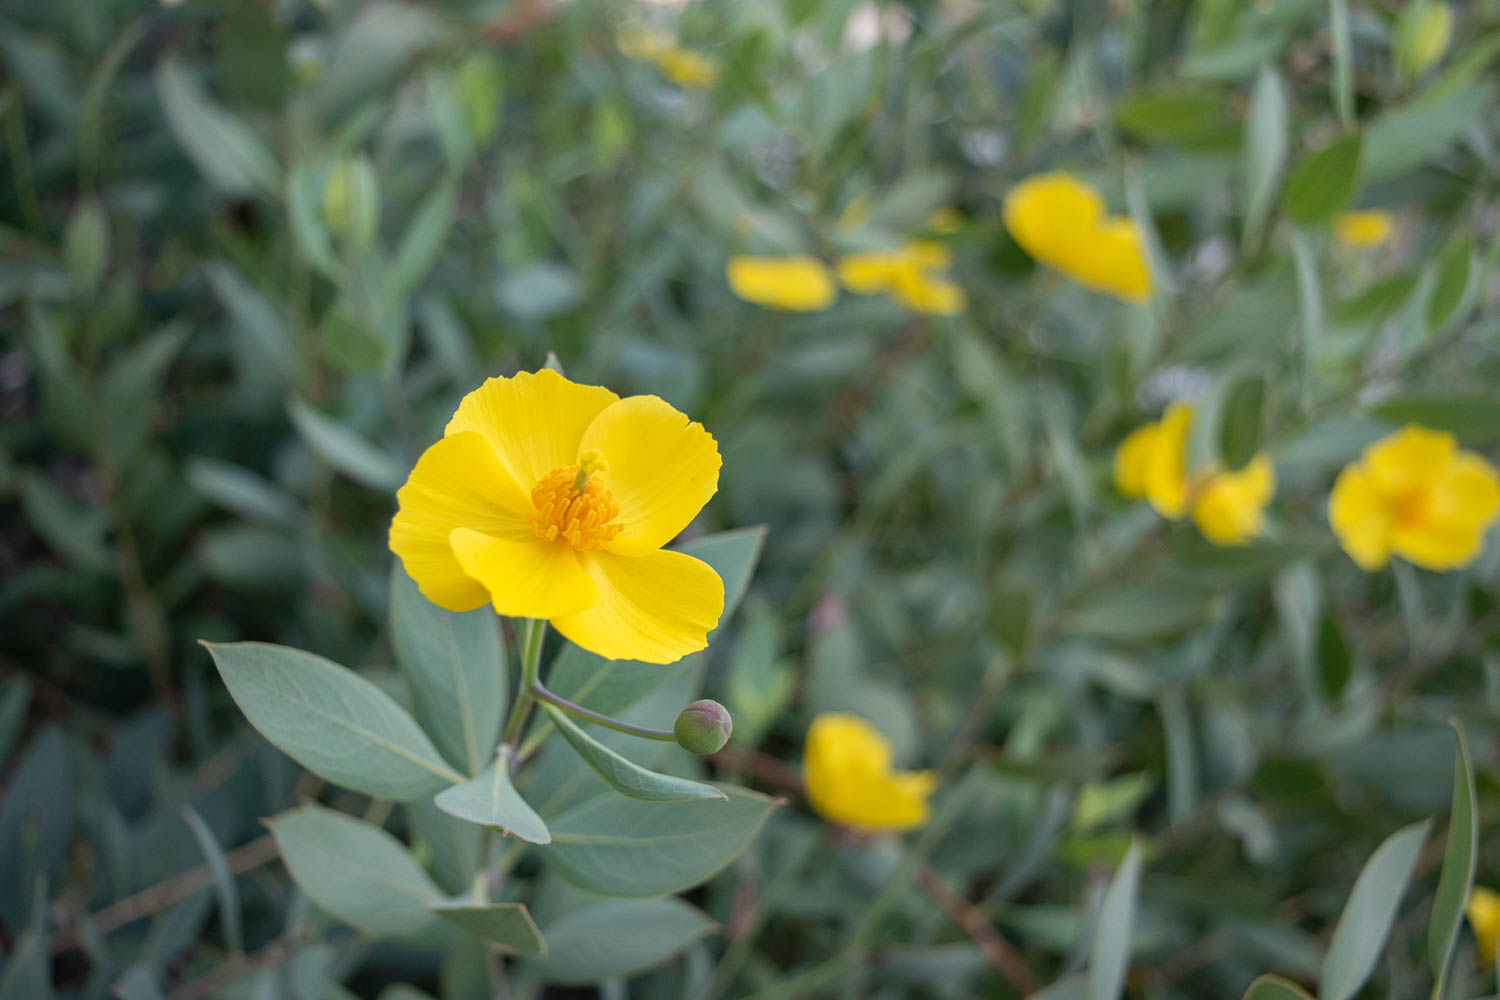 Island Bush Poppy - This was one of my must have shrubs! It blooms all year long (seriously) and is has the prettiest pale blue-green leaves with a pop of bright yellow flowers. I like cutting these and bringing them inside for small arrangements.